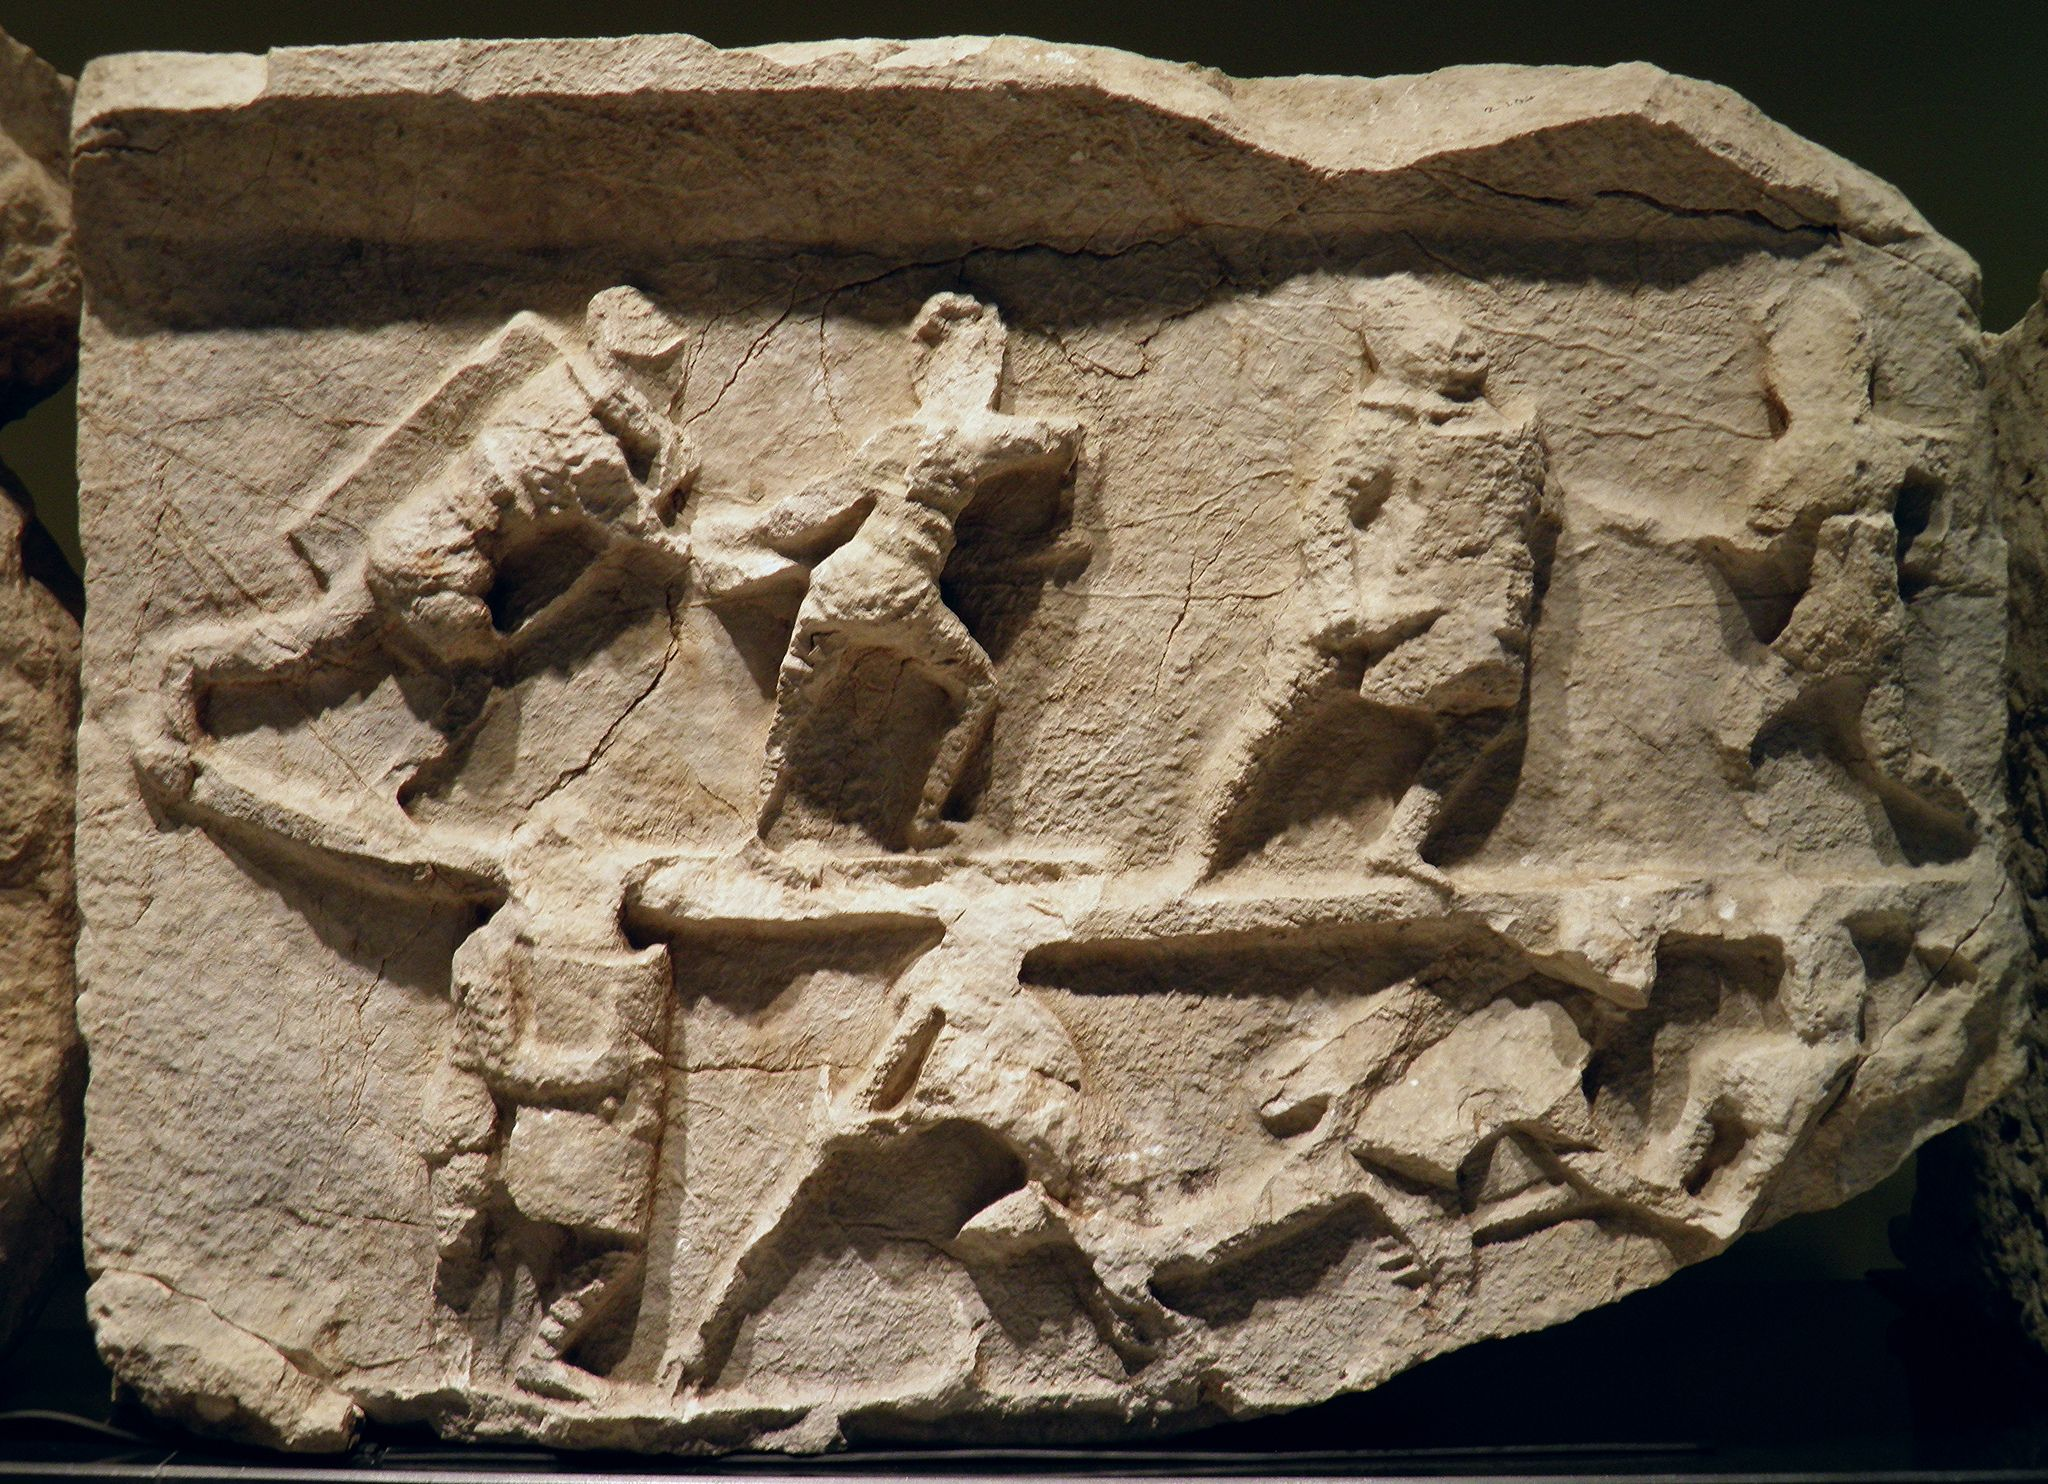 https://flic.kr/p/eaR3fD   Frieze with gladiator figures, 2nd - 3rd century AD, from the necropolis at Kibyra, Burdur Museum